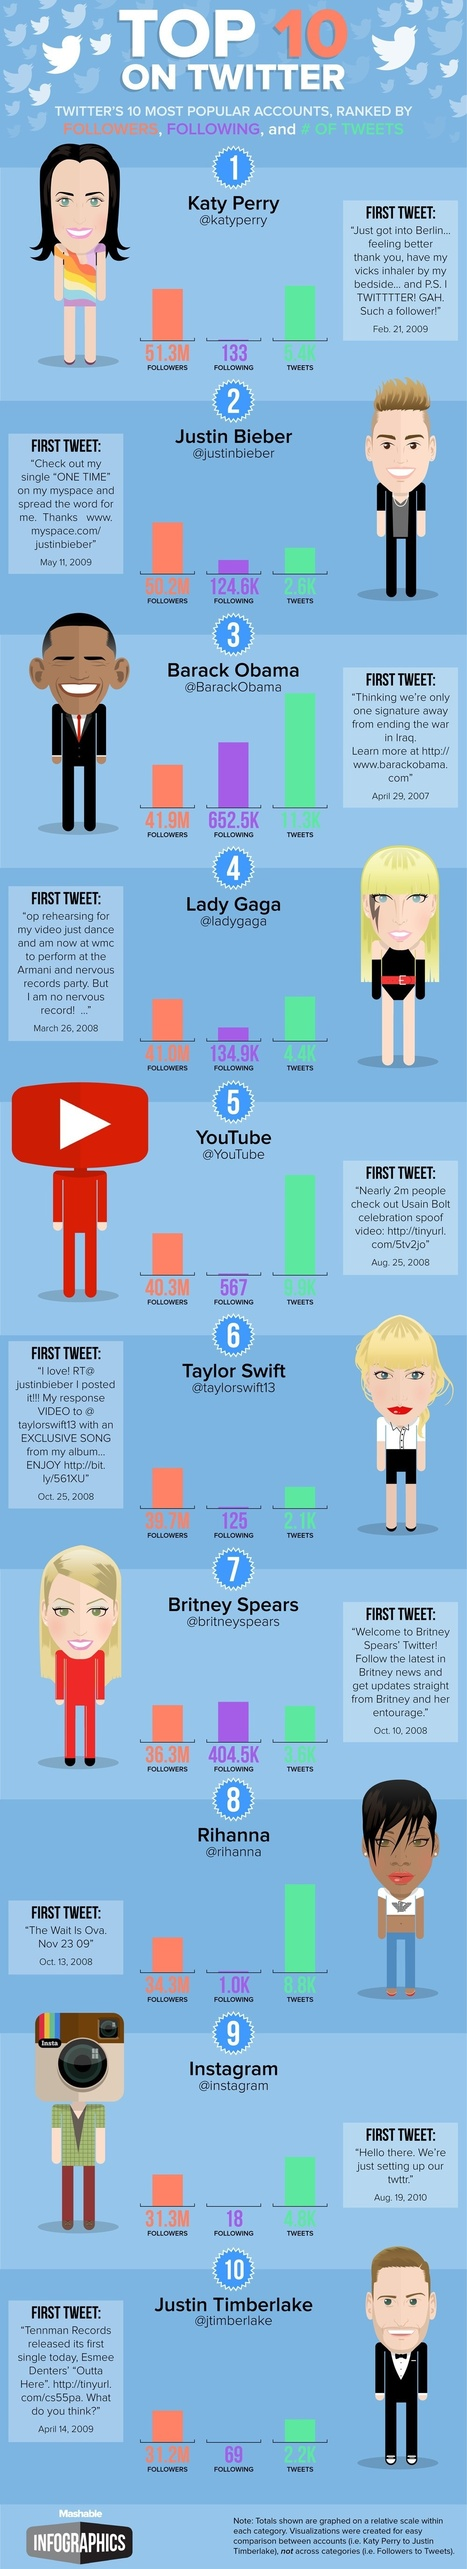 Twitter's 10 Most Popular Accounts (And Their First Ever Tweets) [INFOGRAPHIC] | Understanding Social Media | Scoop.it